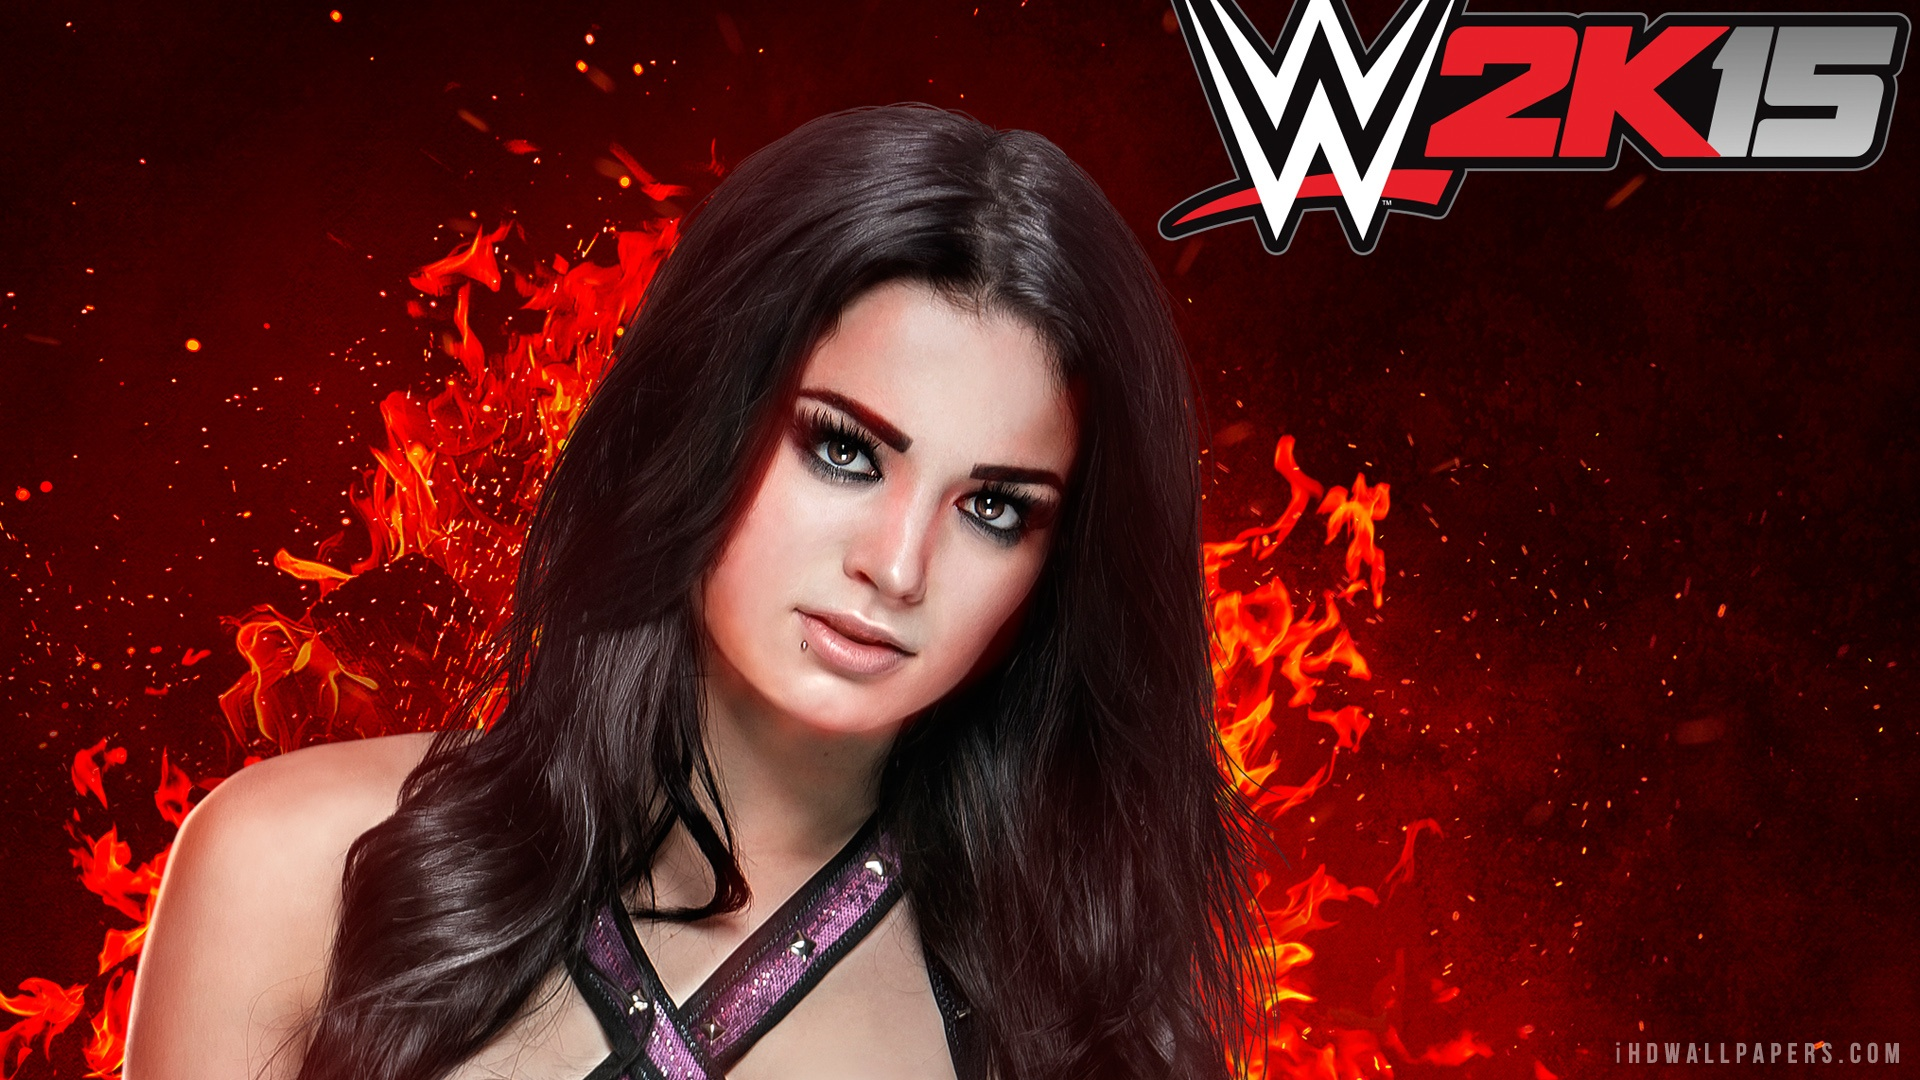 Wwe Hd Wallpaper Wallpapersafari